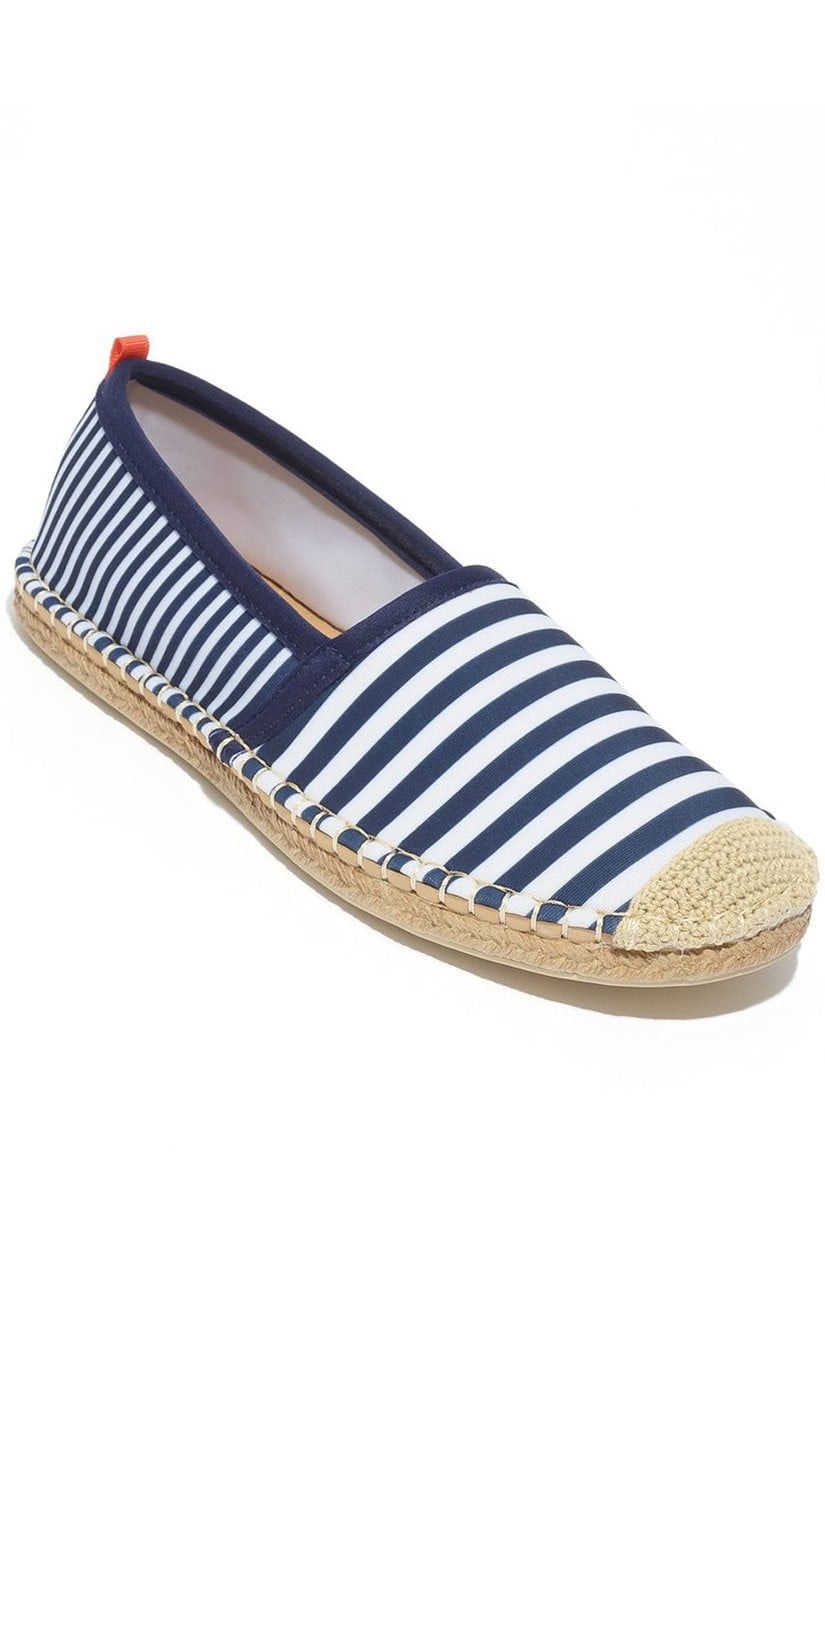 Sea Star Beachwear Ladies Beachcomber Espadrille in Navy Stripe: